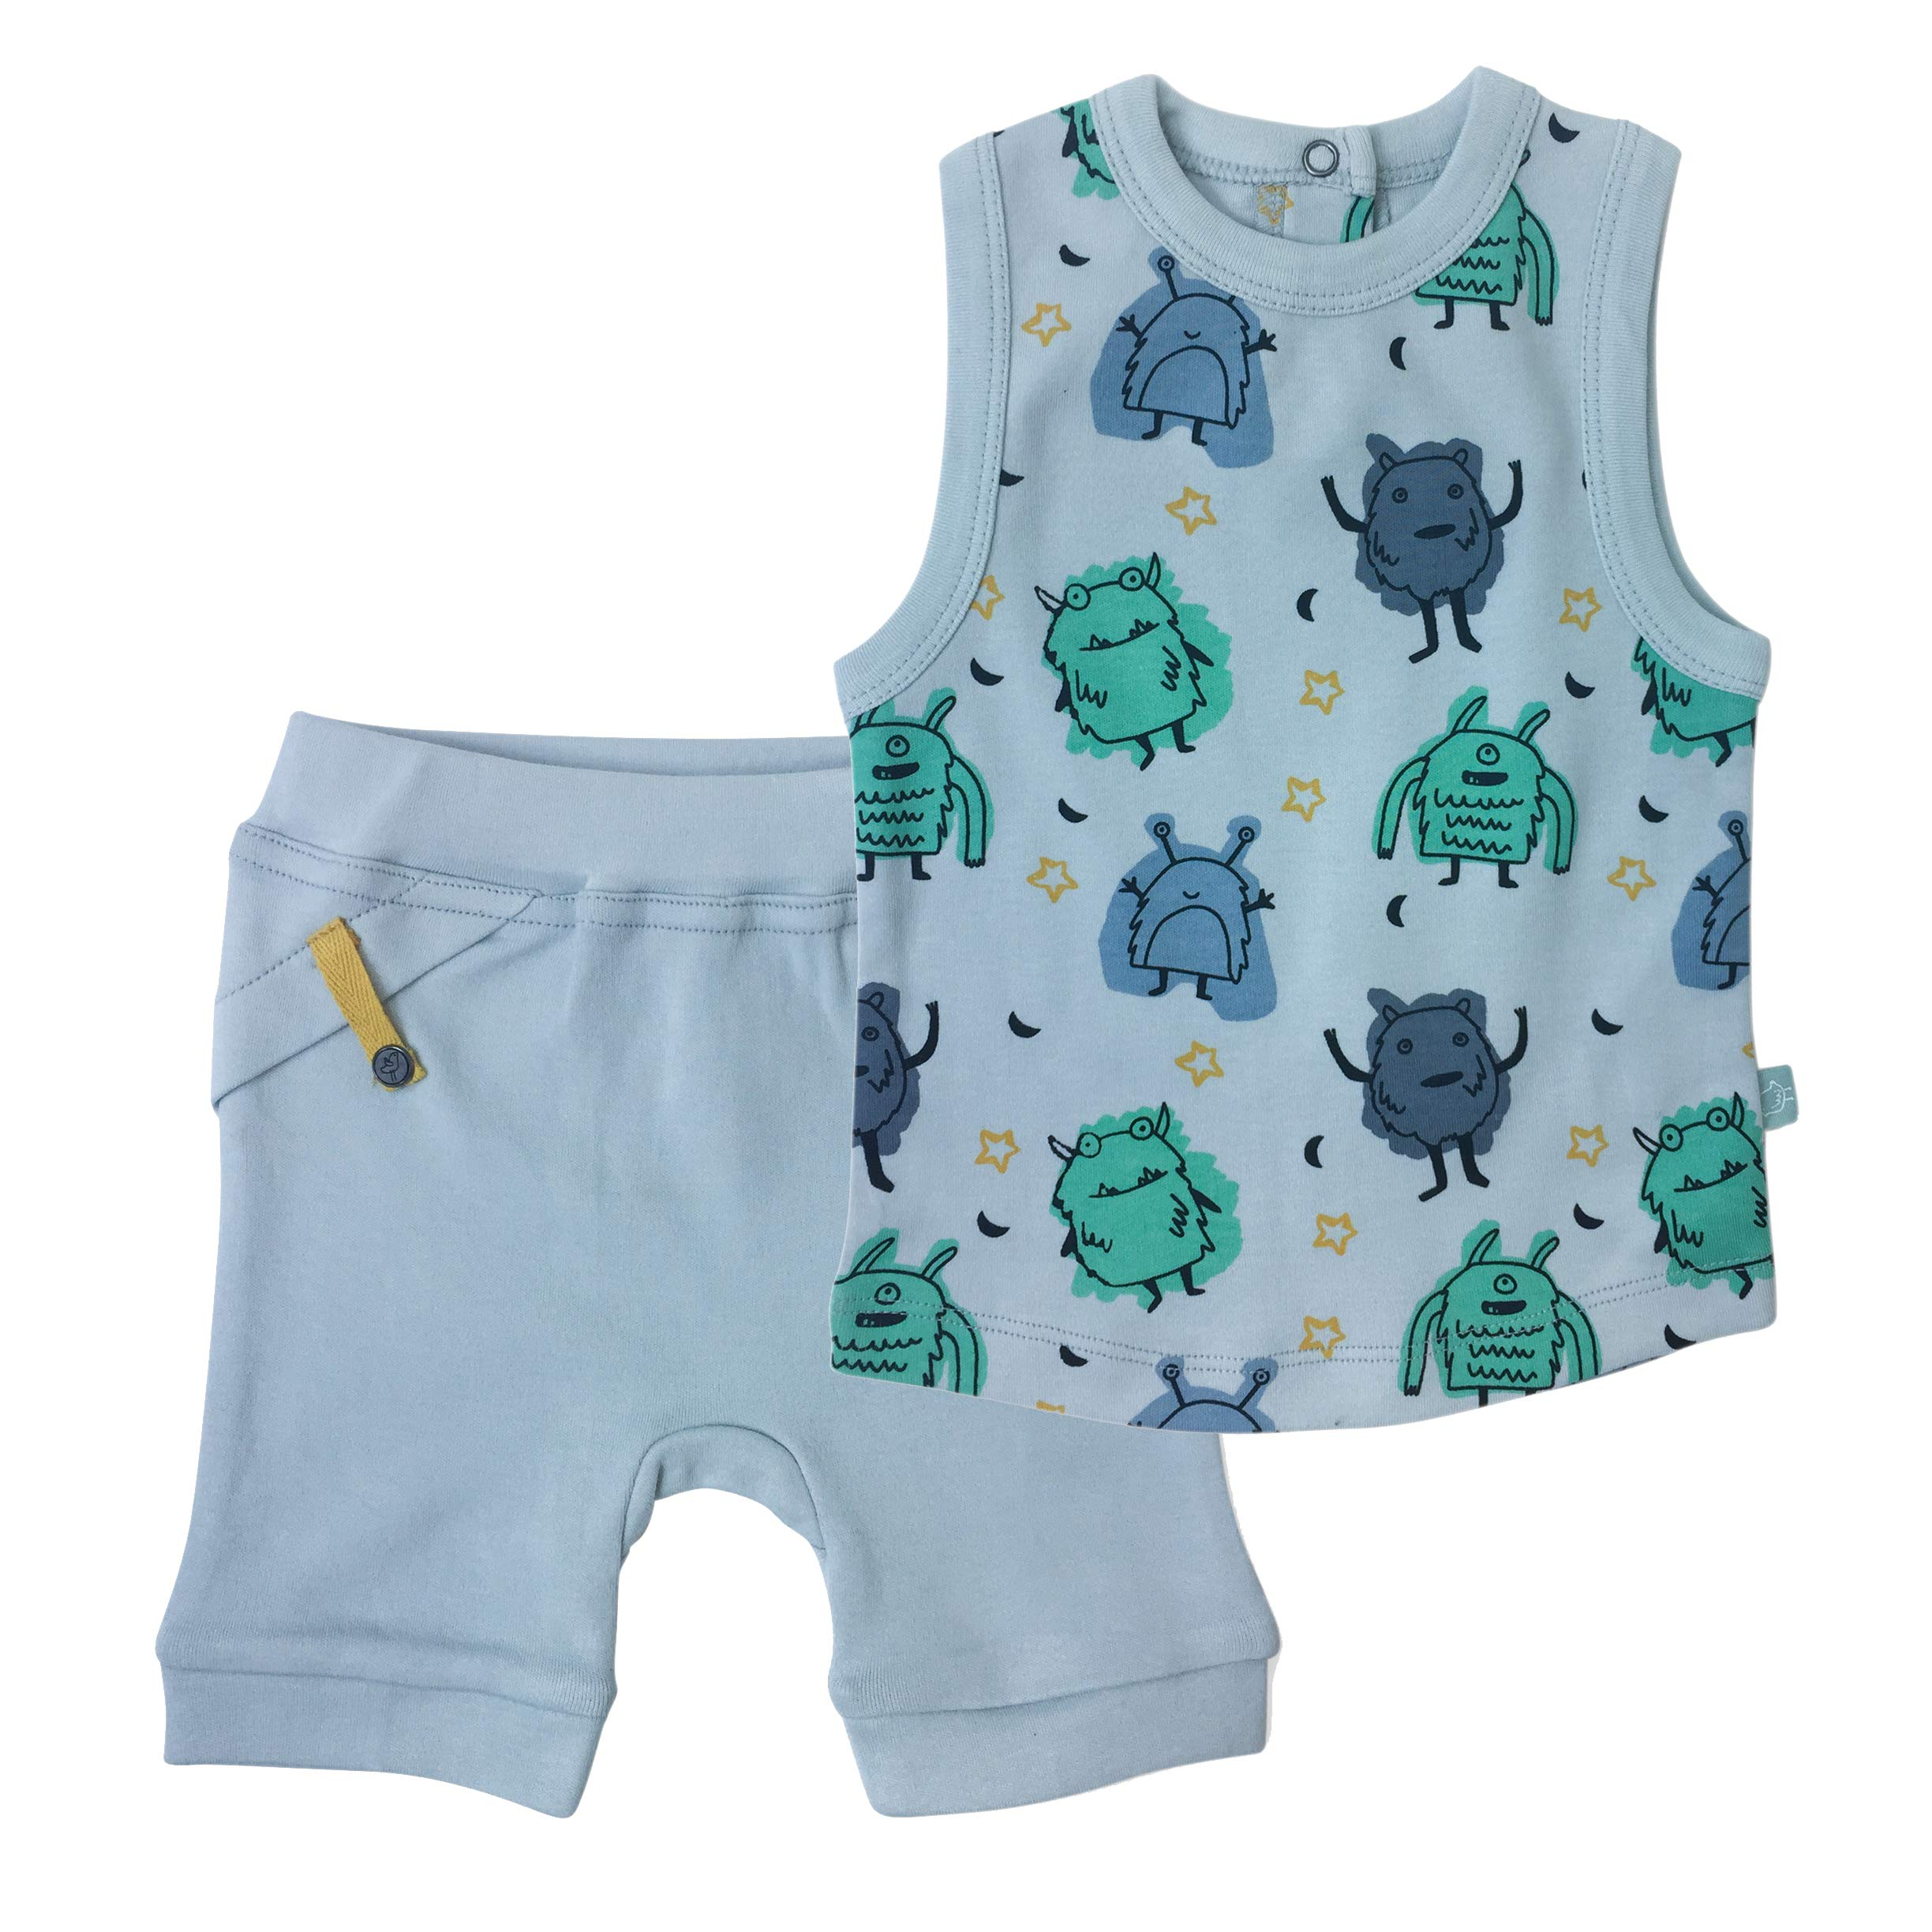 Finn + Emma Organic Cotton Baby Tank Top T-Shirt and Pull-Up Shorts Set – Monsters, 0-3 Months